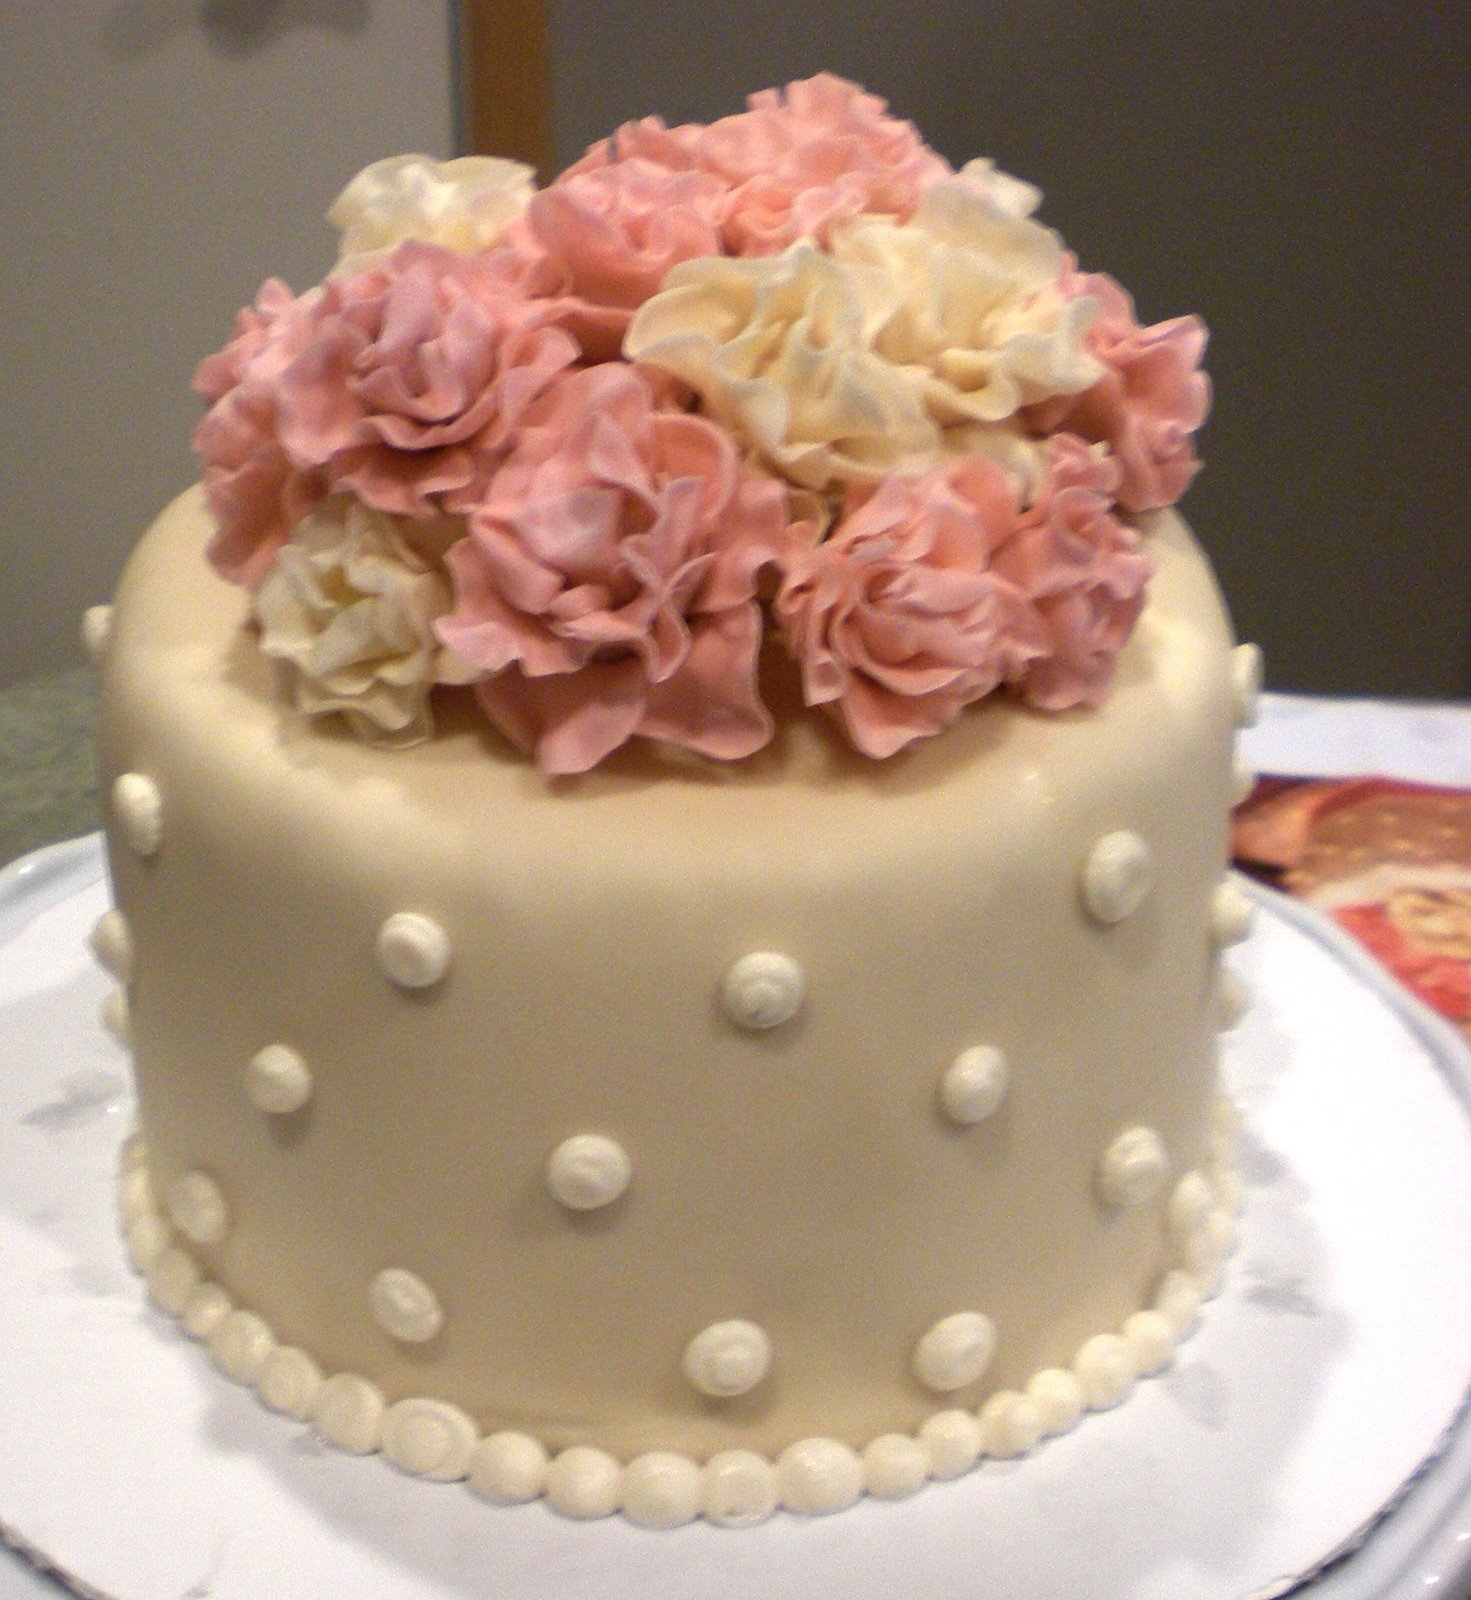 Order cakes for firstanniversary celebration from Ferns N Petals Get deliver first wedding anniversary cake online to surprise your partner